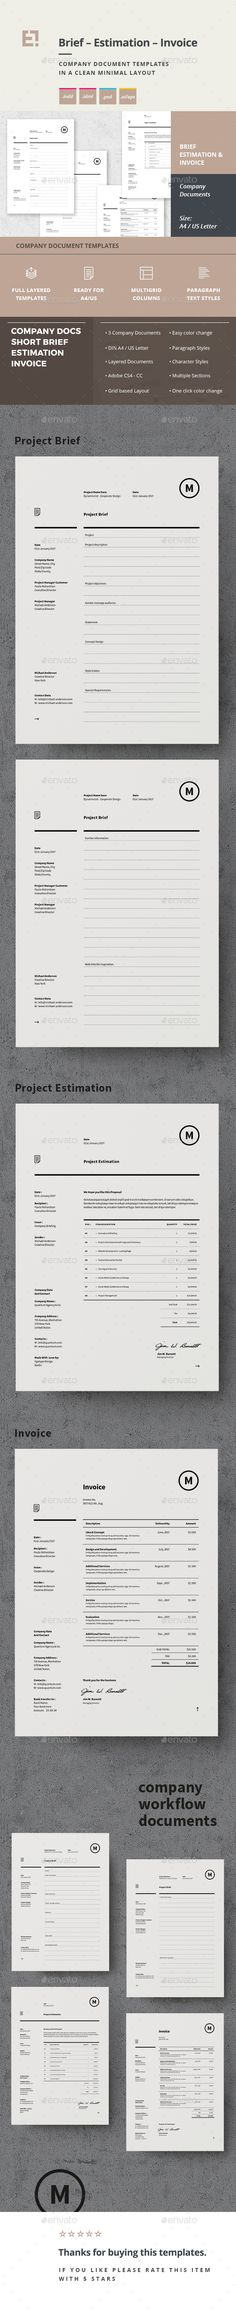 Invoice Desgin Template Proposals, Illustrators and Photoshop - project brief template